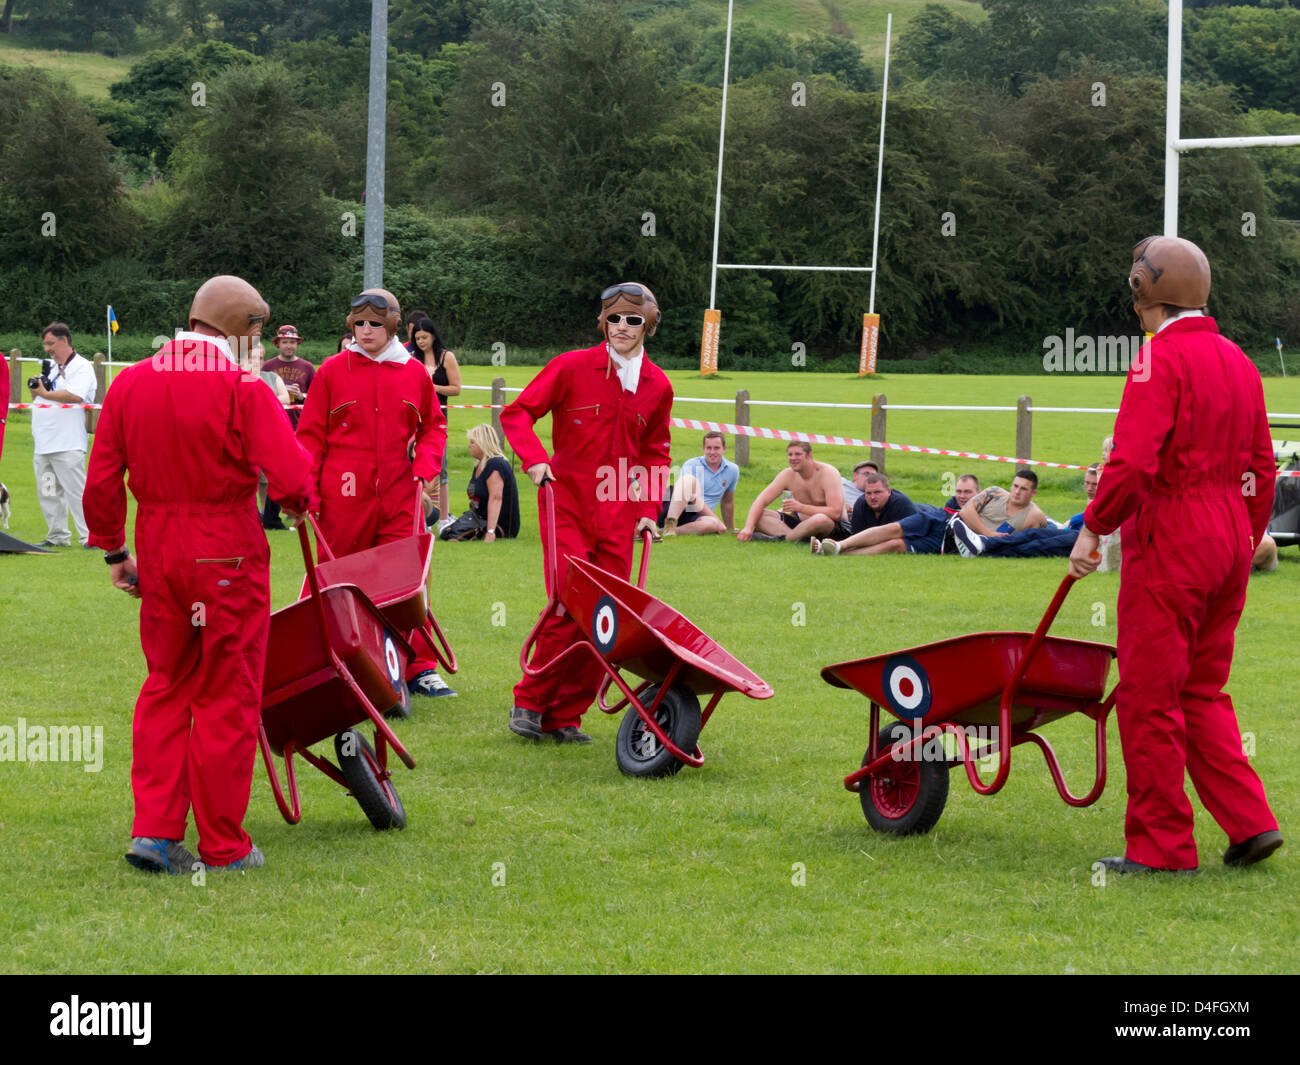 group of men wearing red boiler suits pushing red wheelbarrows round a field at a fete in Derbyshire England - Stock Image